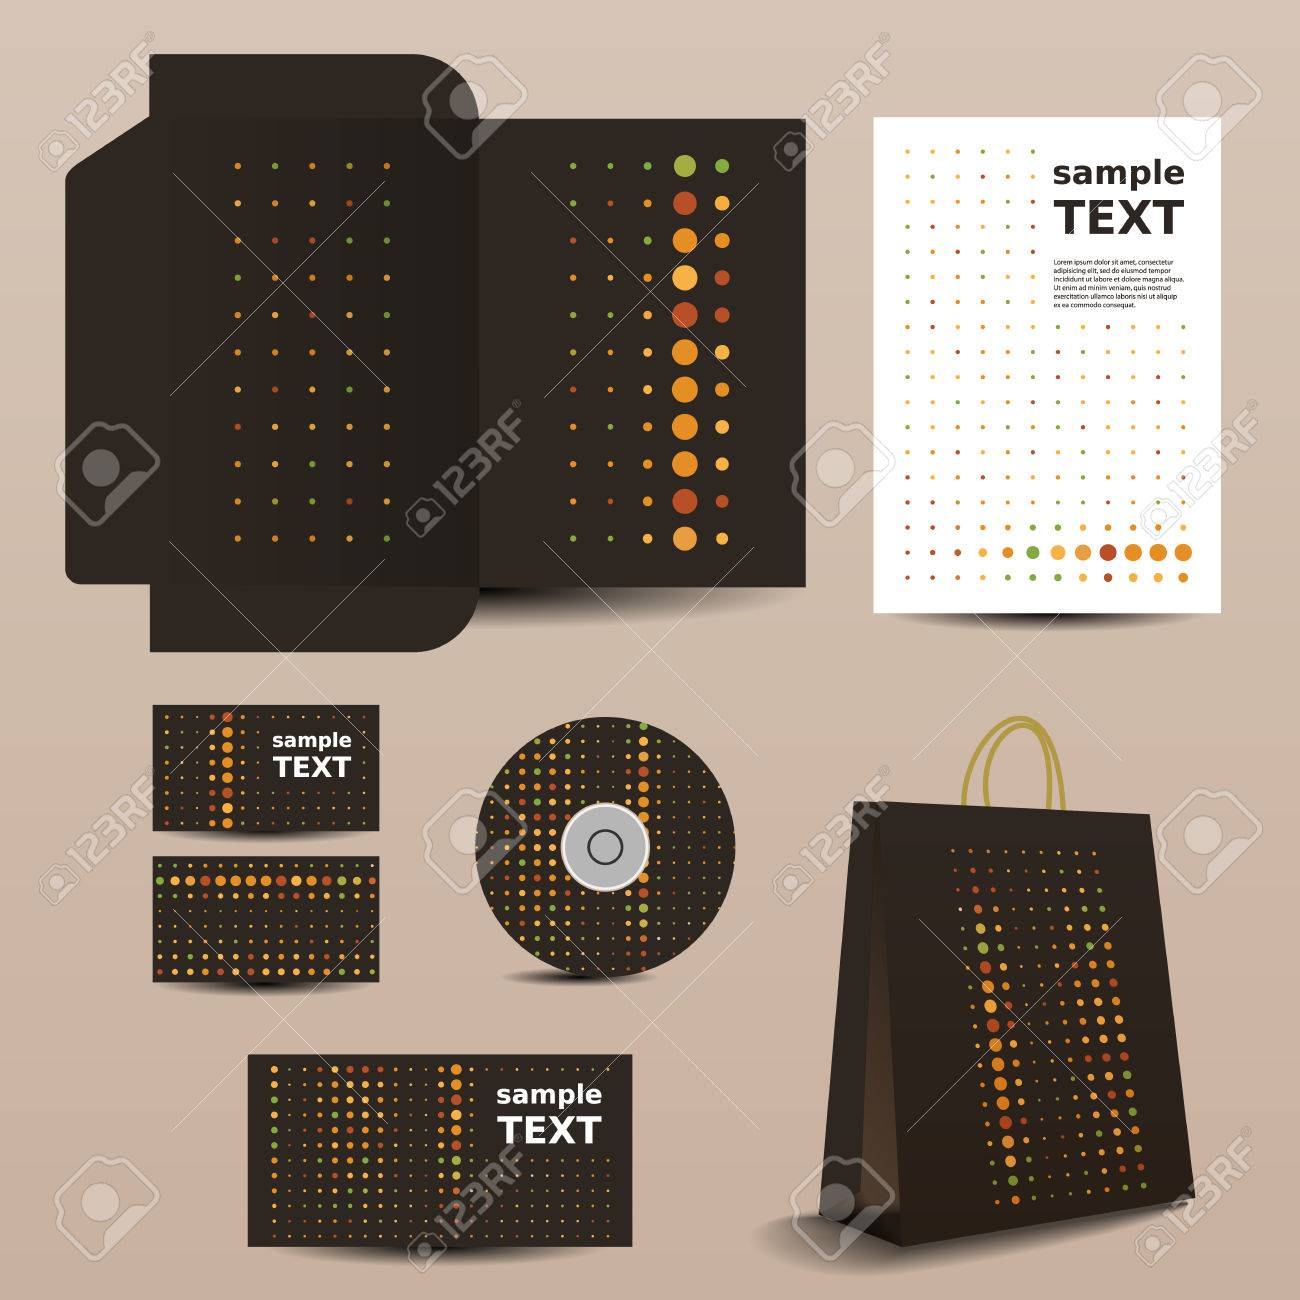 Stationery Template, Corporate Image Design Stock Vector - 25253042